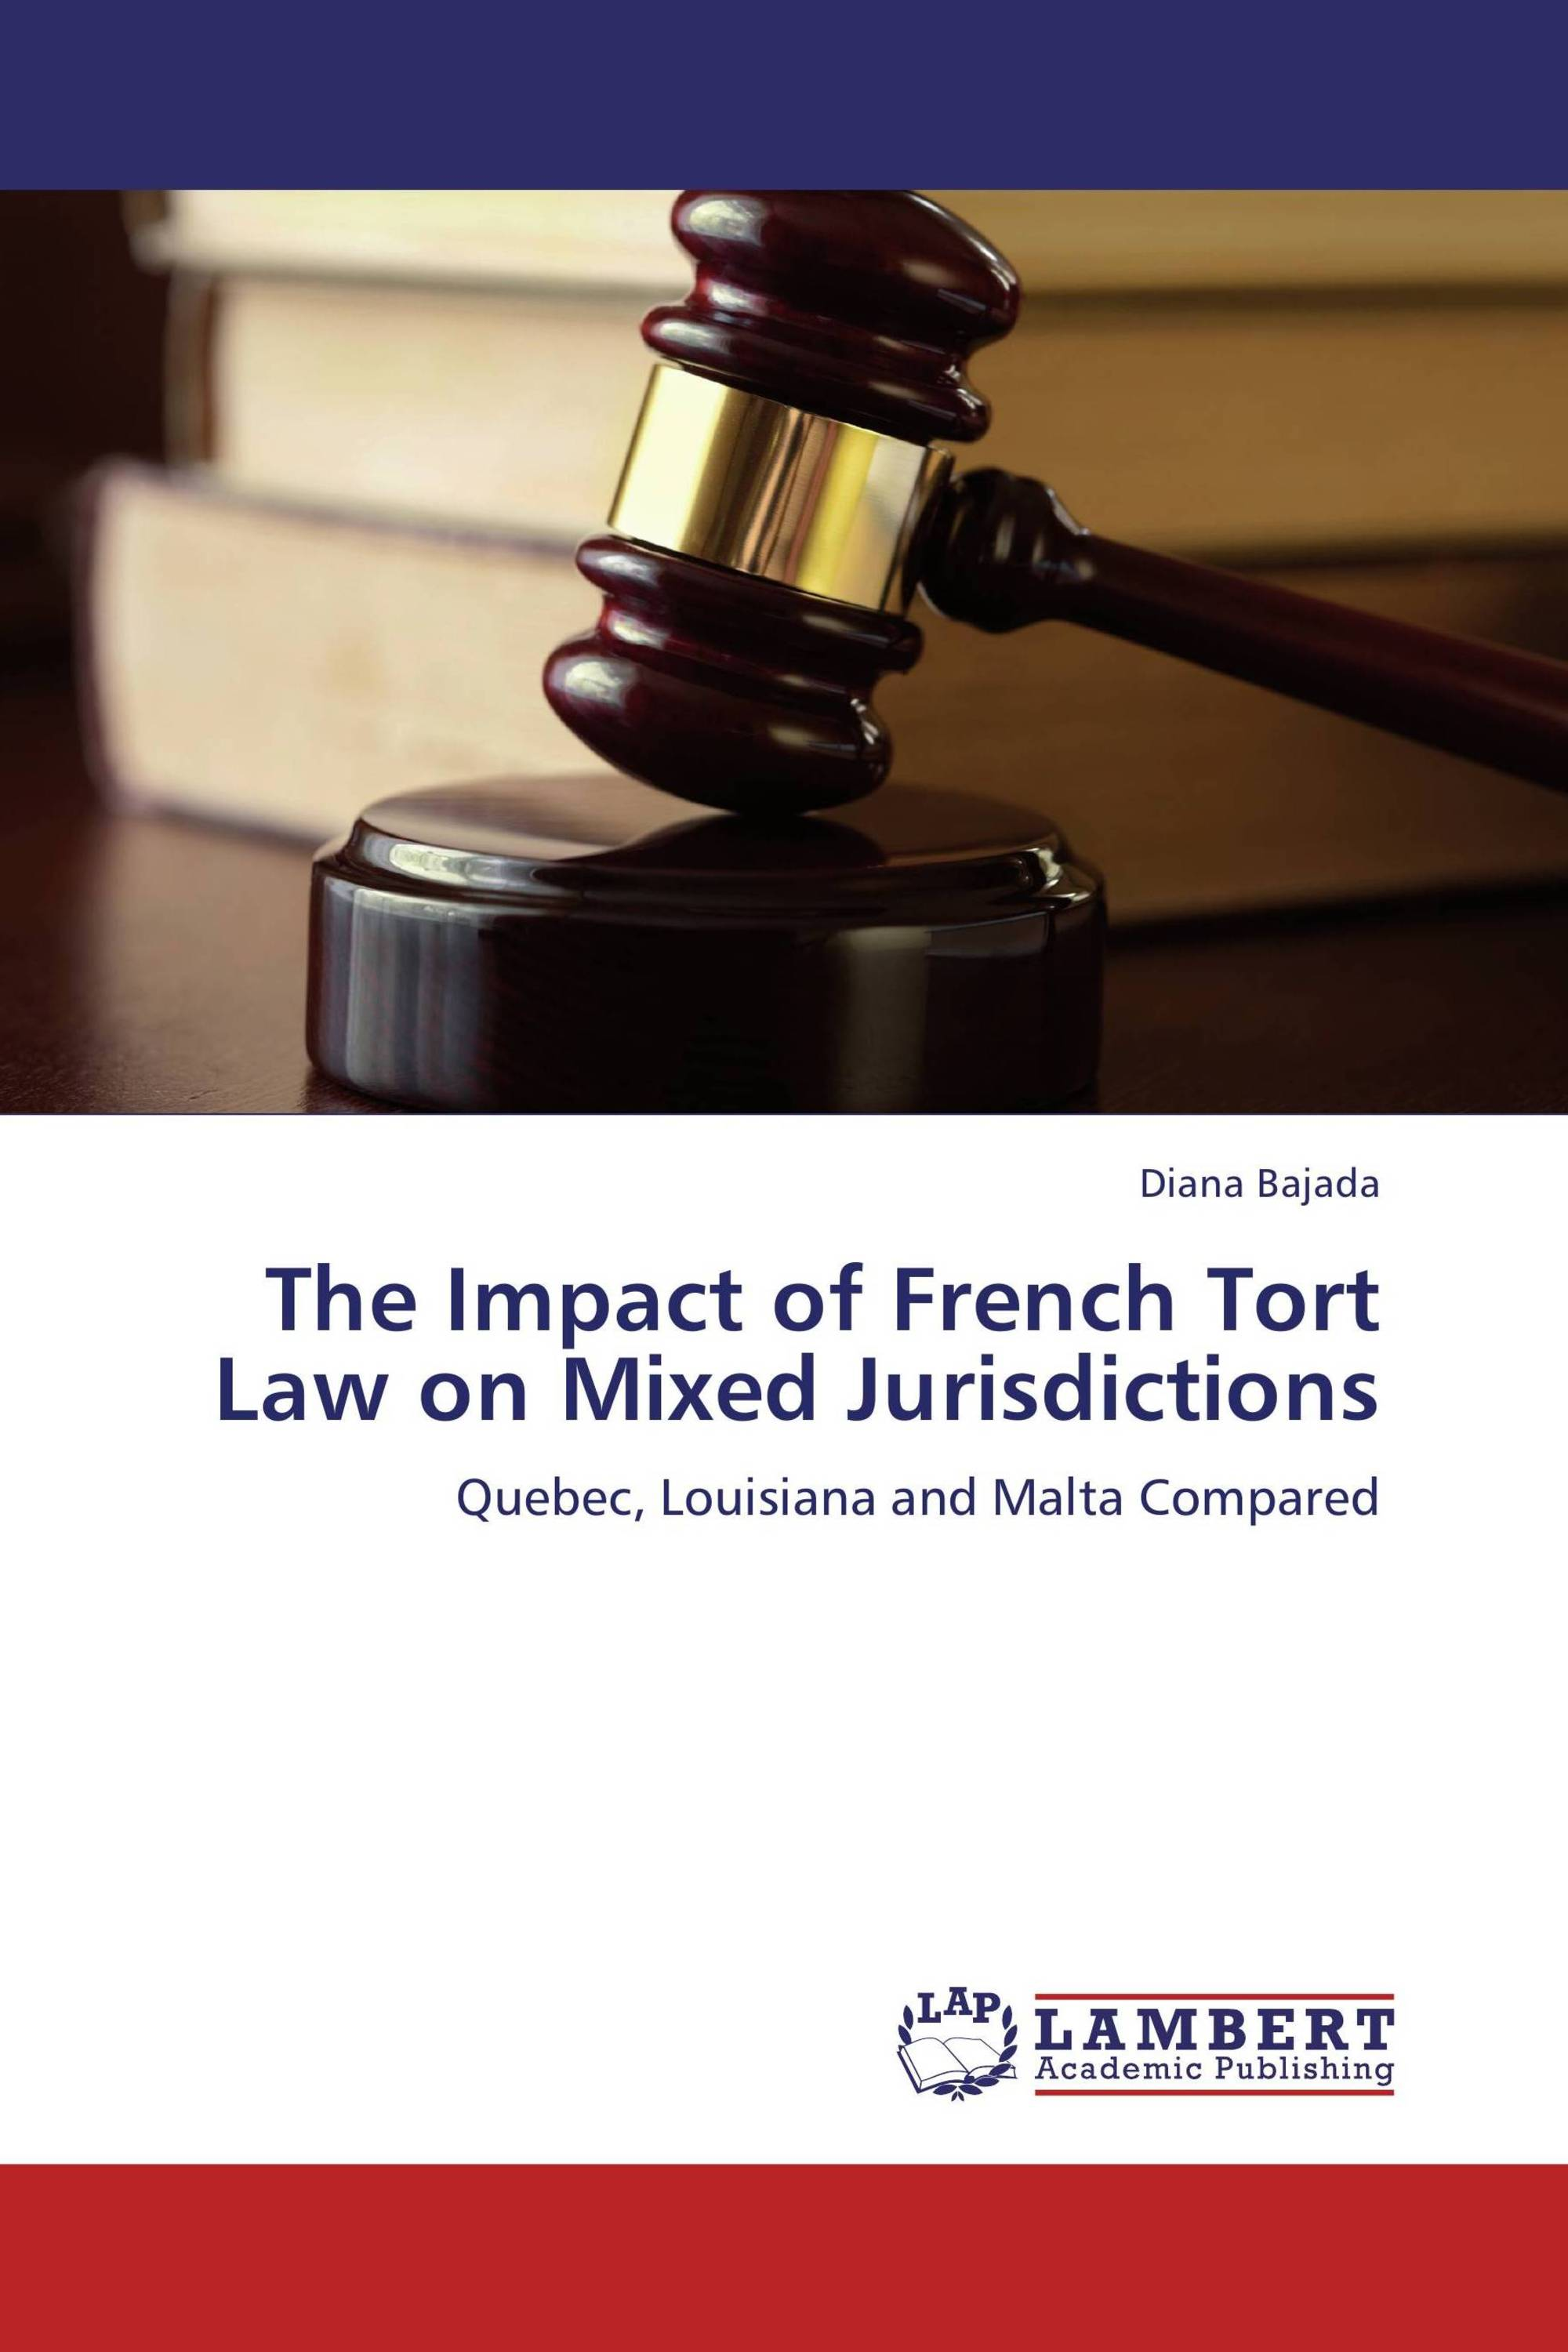 The Impact of French Tort Law on Mixed Jurisdictions